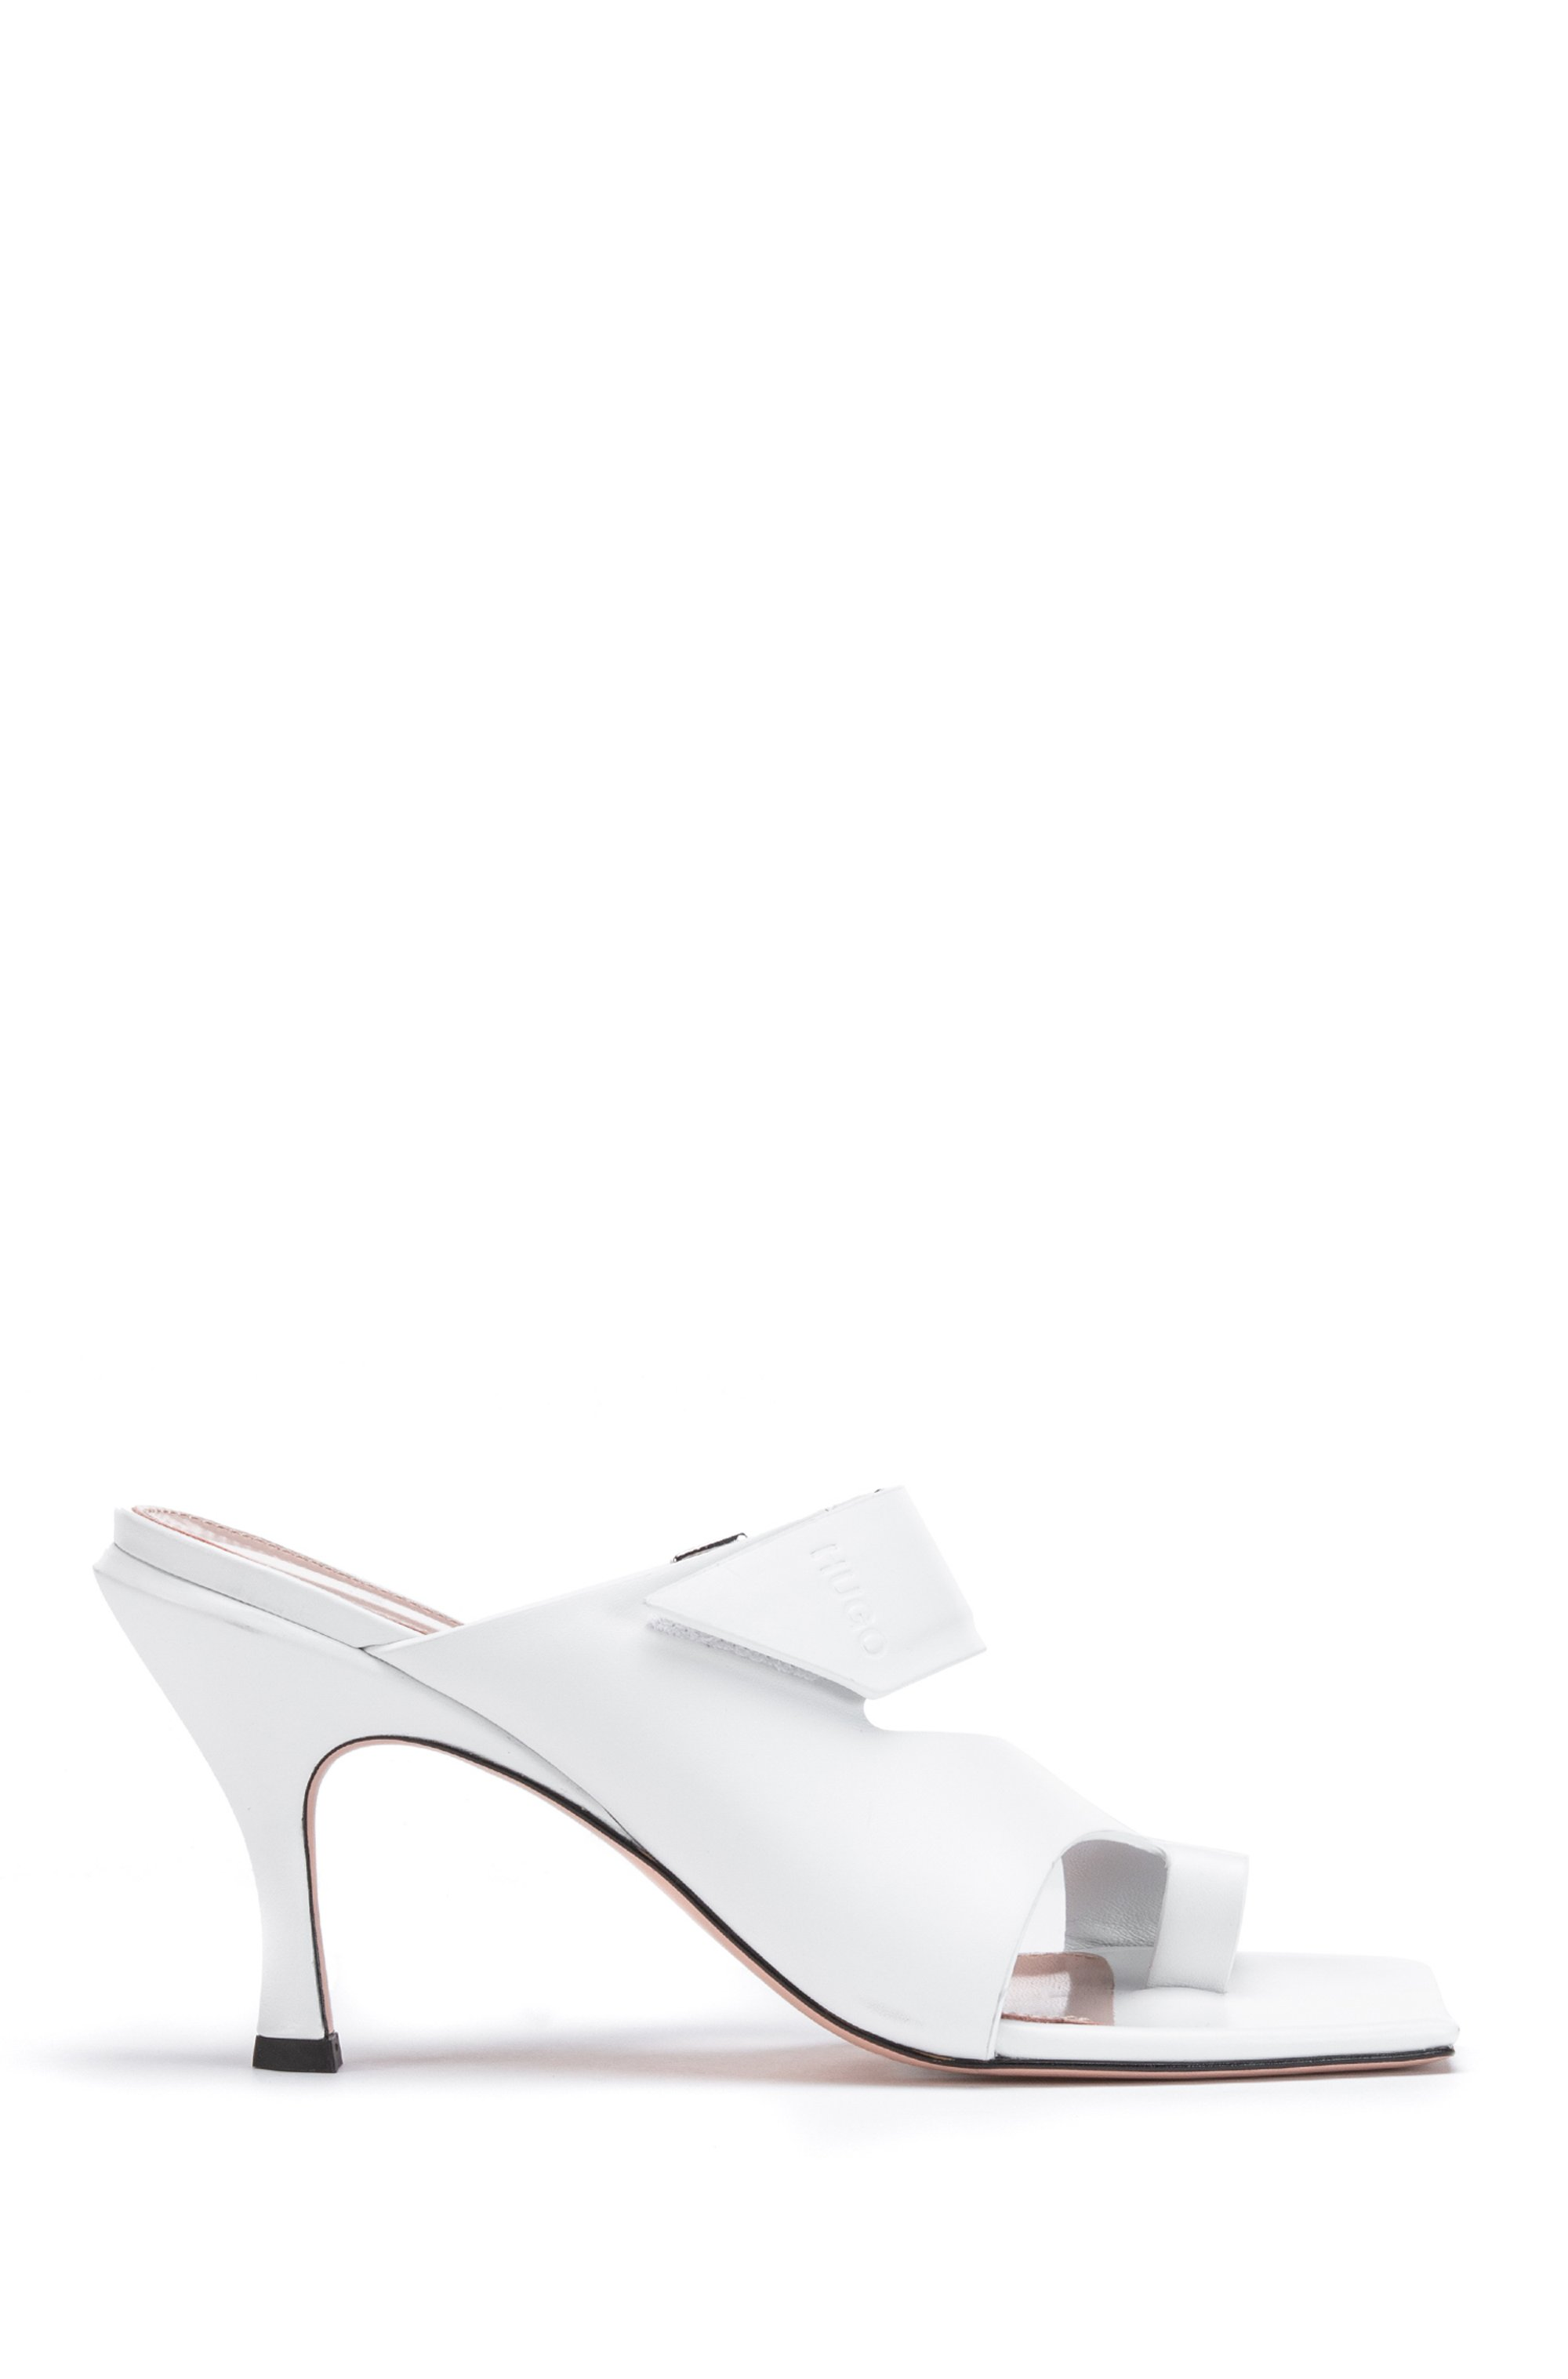 Square-toe mules in leather with strap detail, White